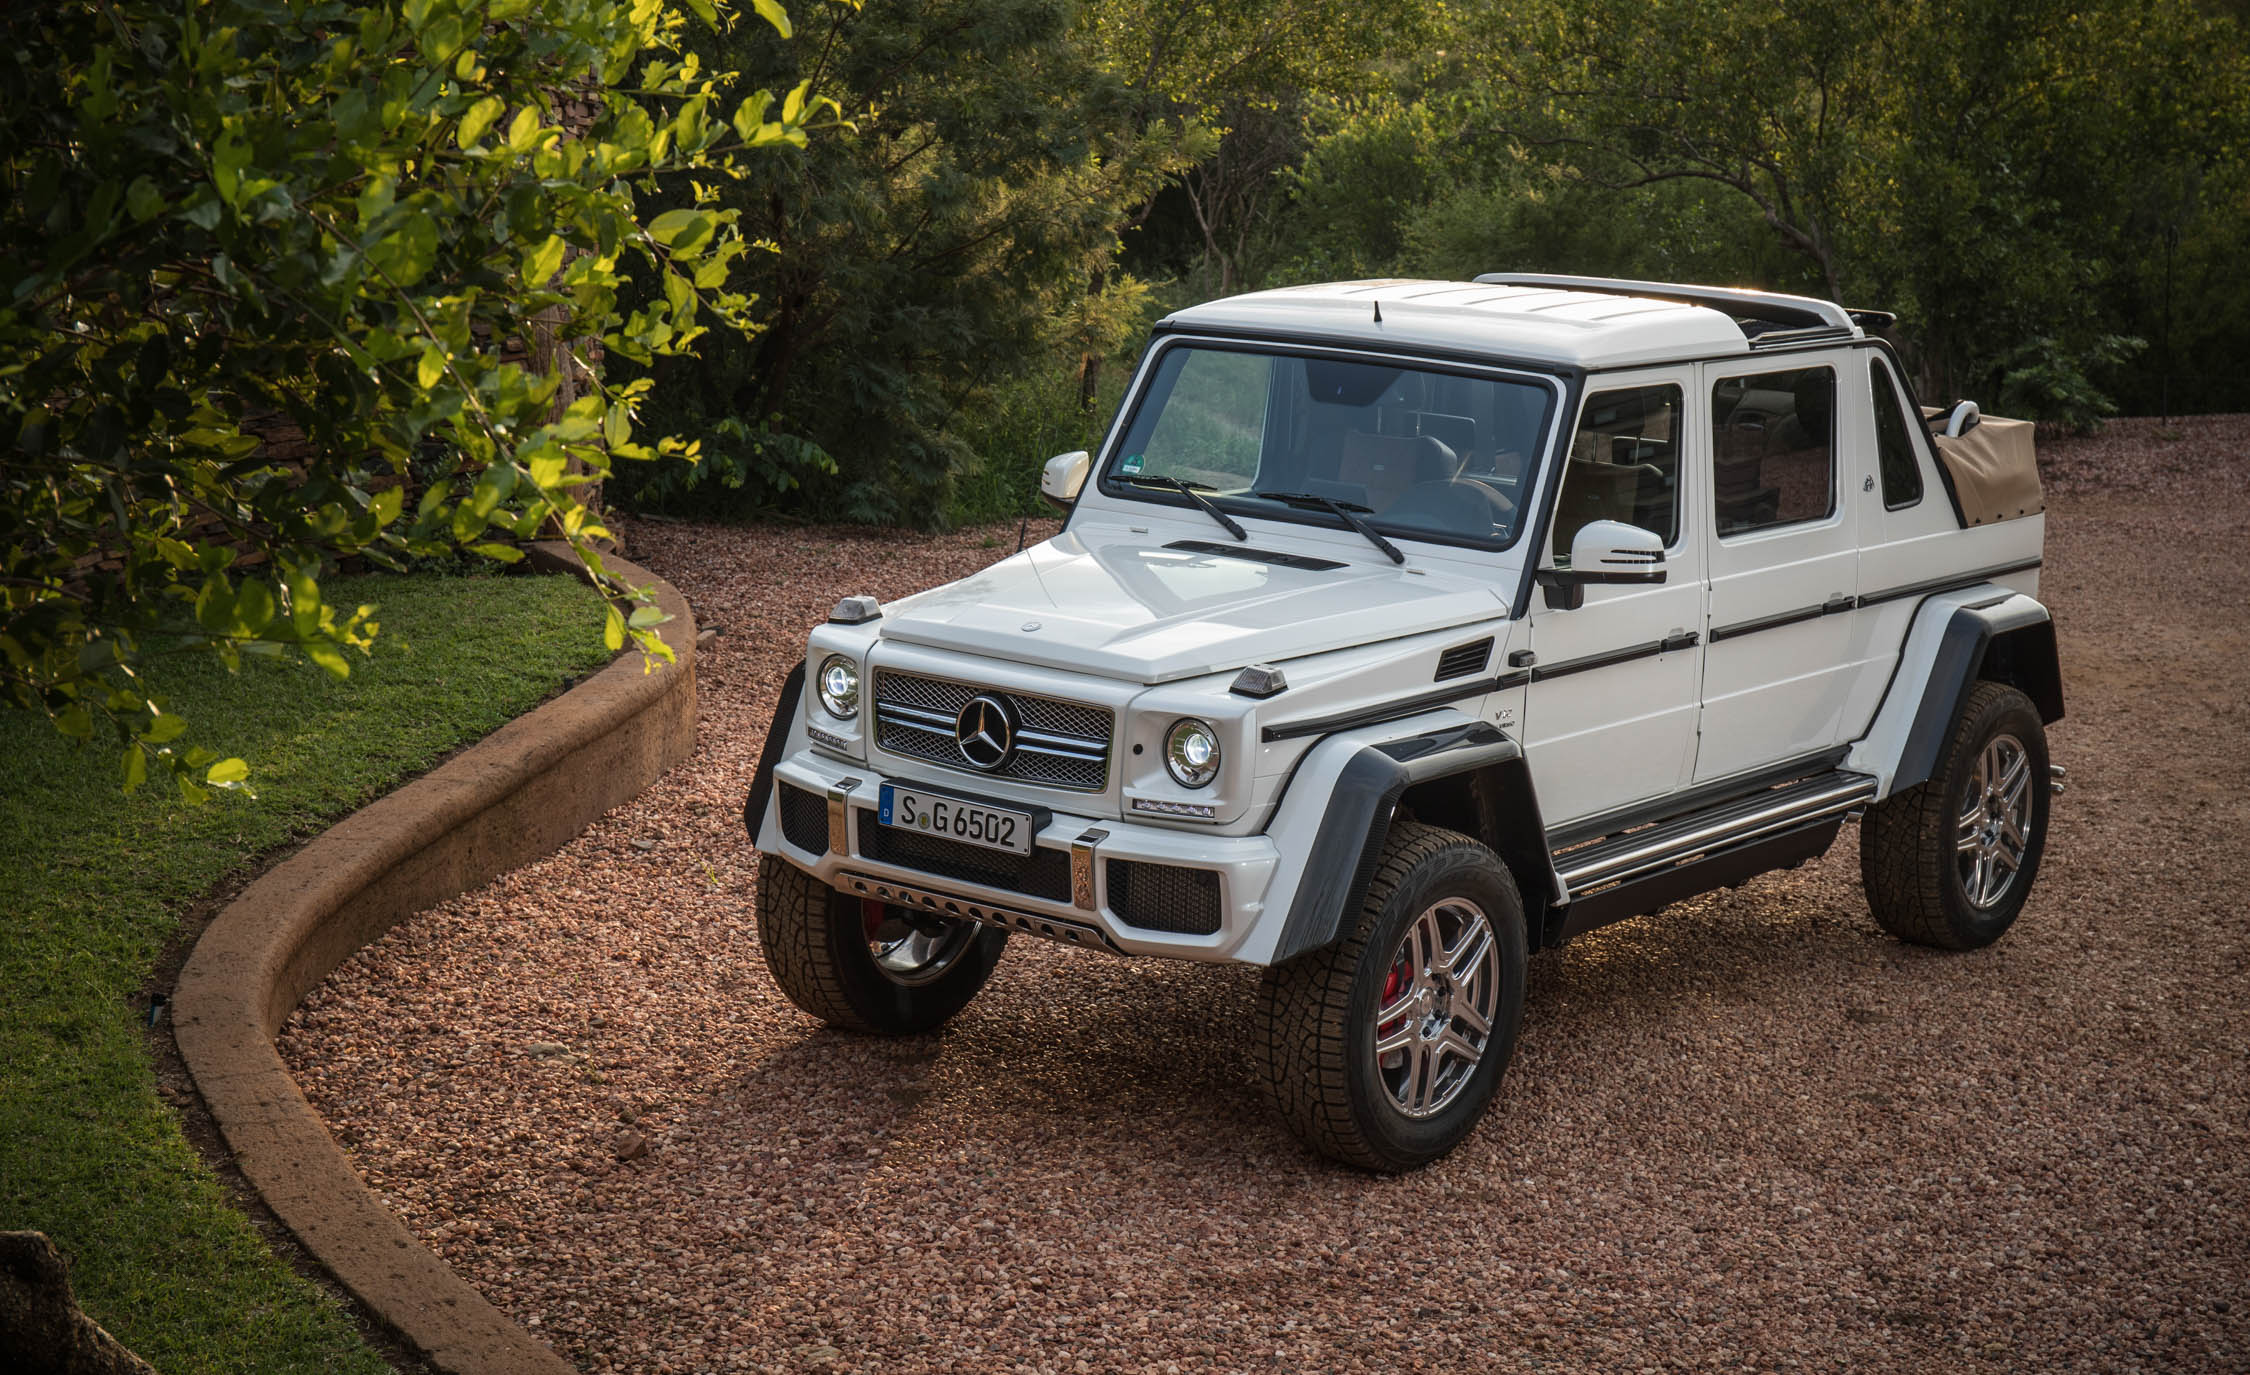 2018 Mercedes Maybach G650 Landaulet White (View 3 of 52)